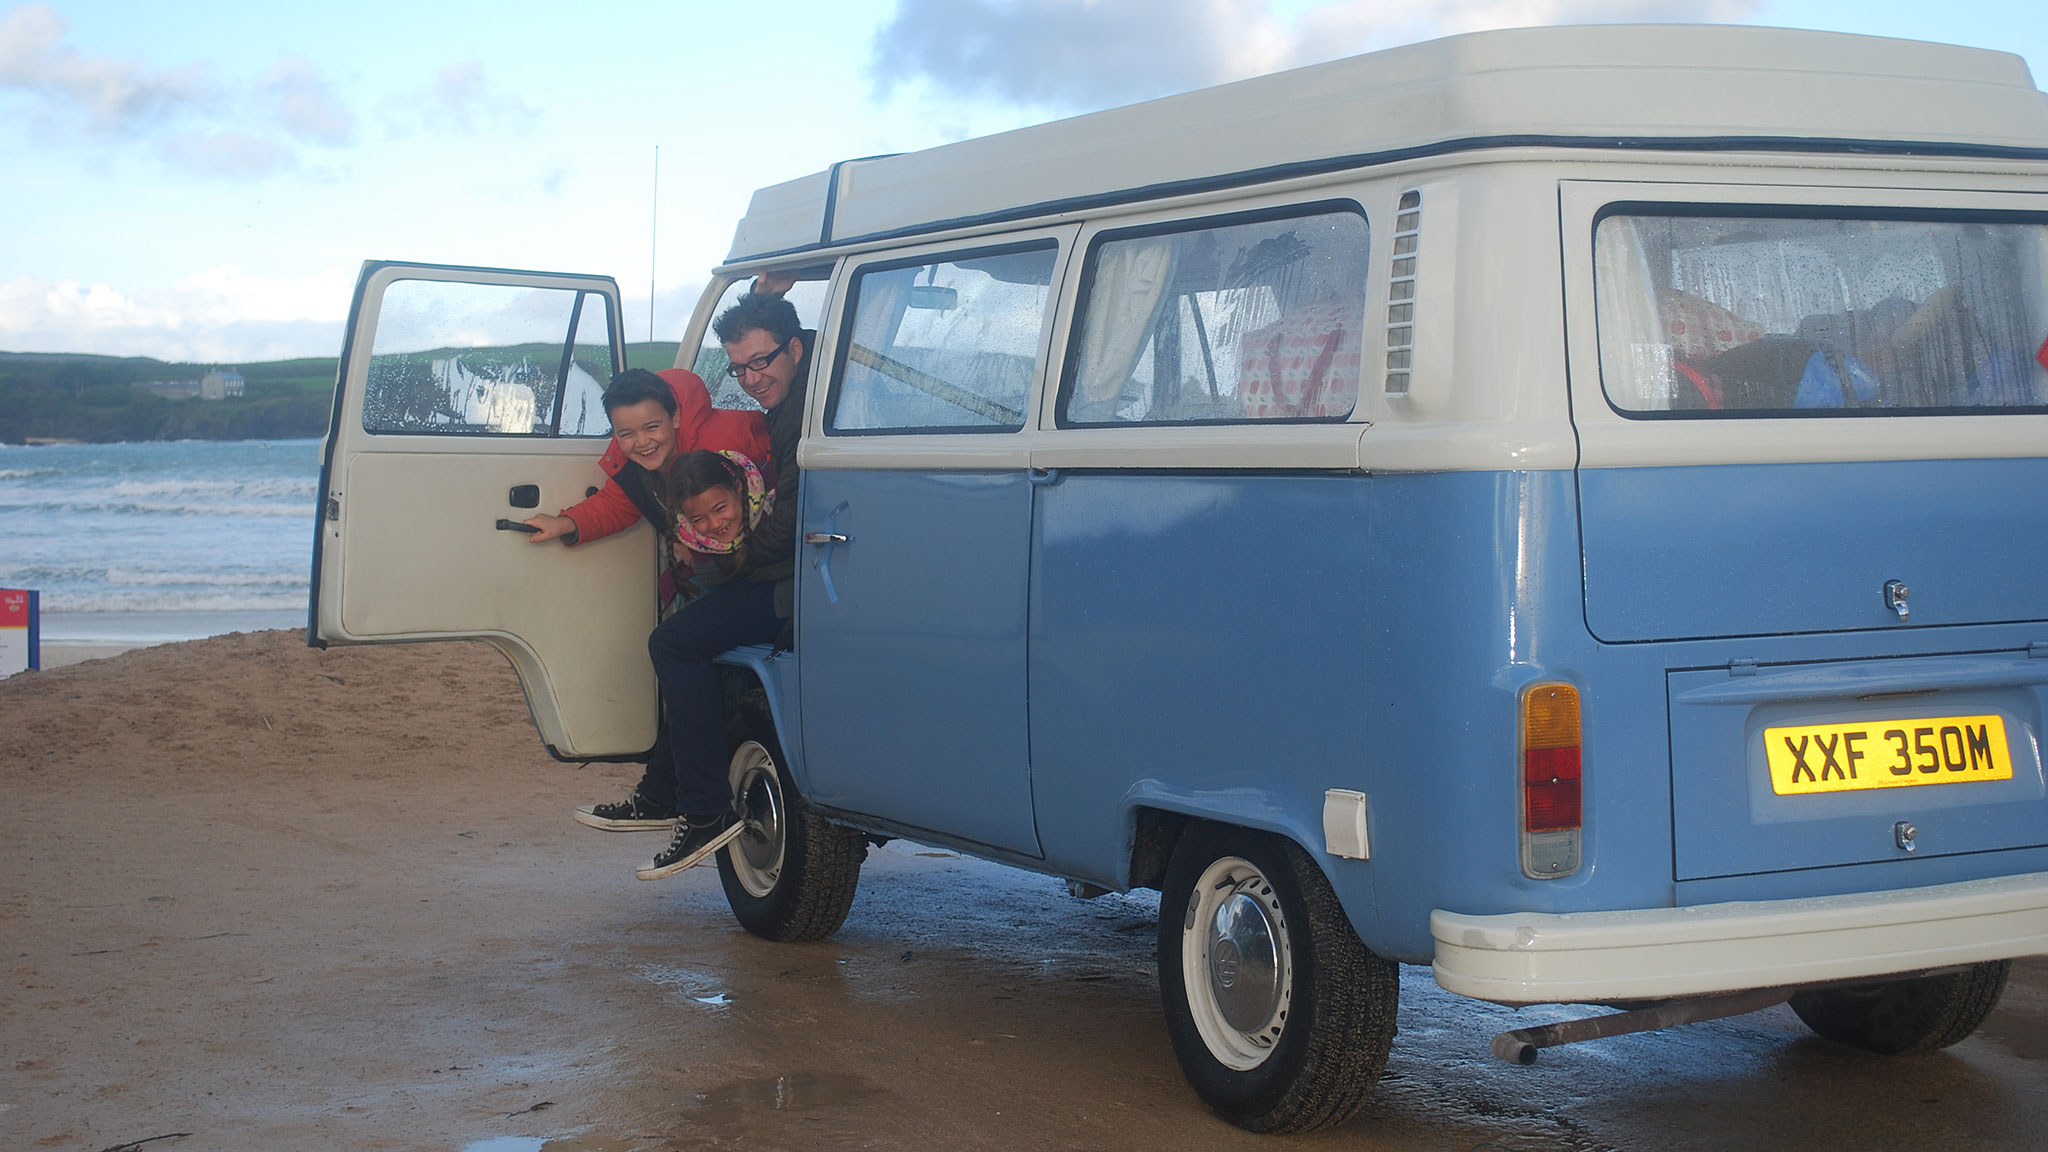 volkswagen s auto rentals van sale supply hippie for vintage maine included camper foreign img inc what adventures